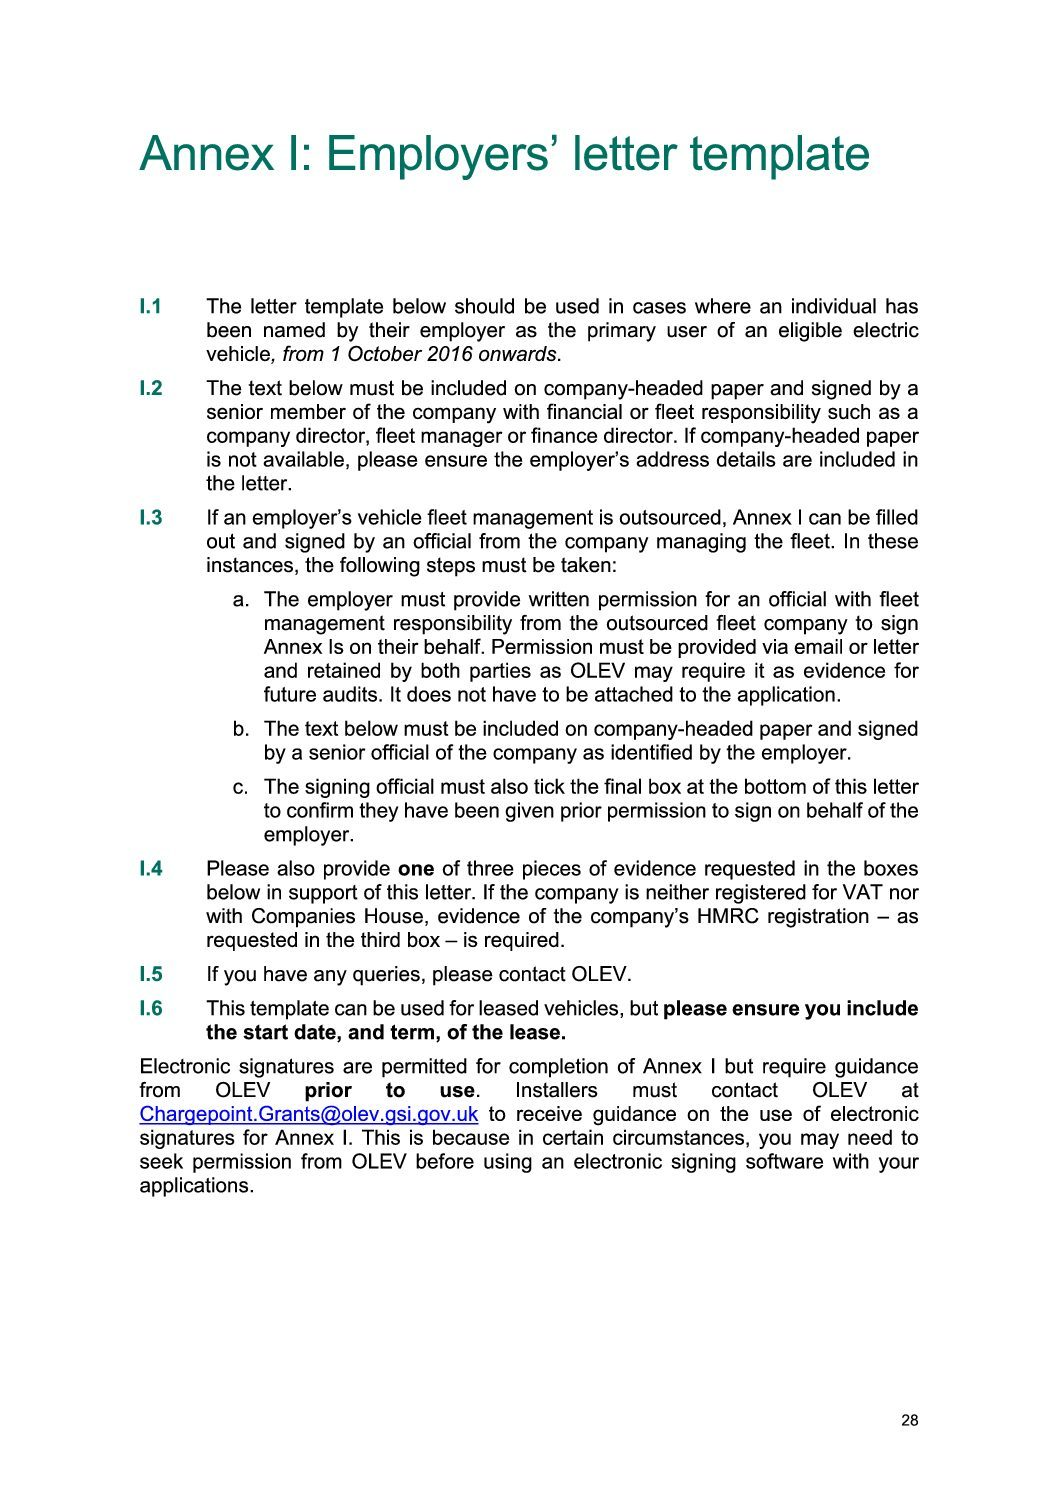 employers-letter-template